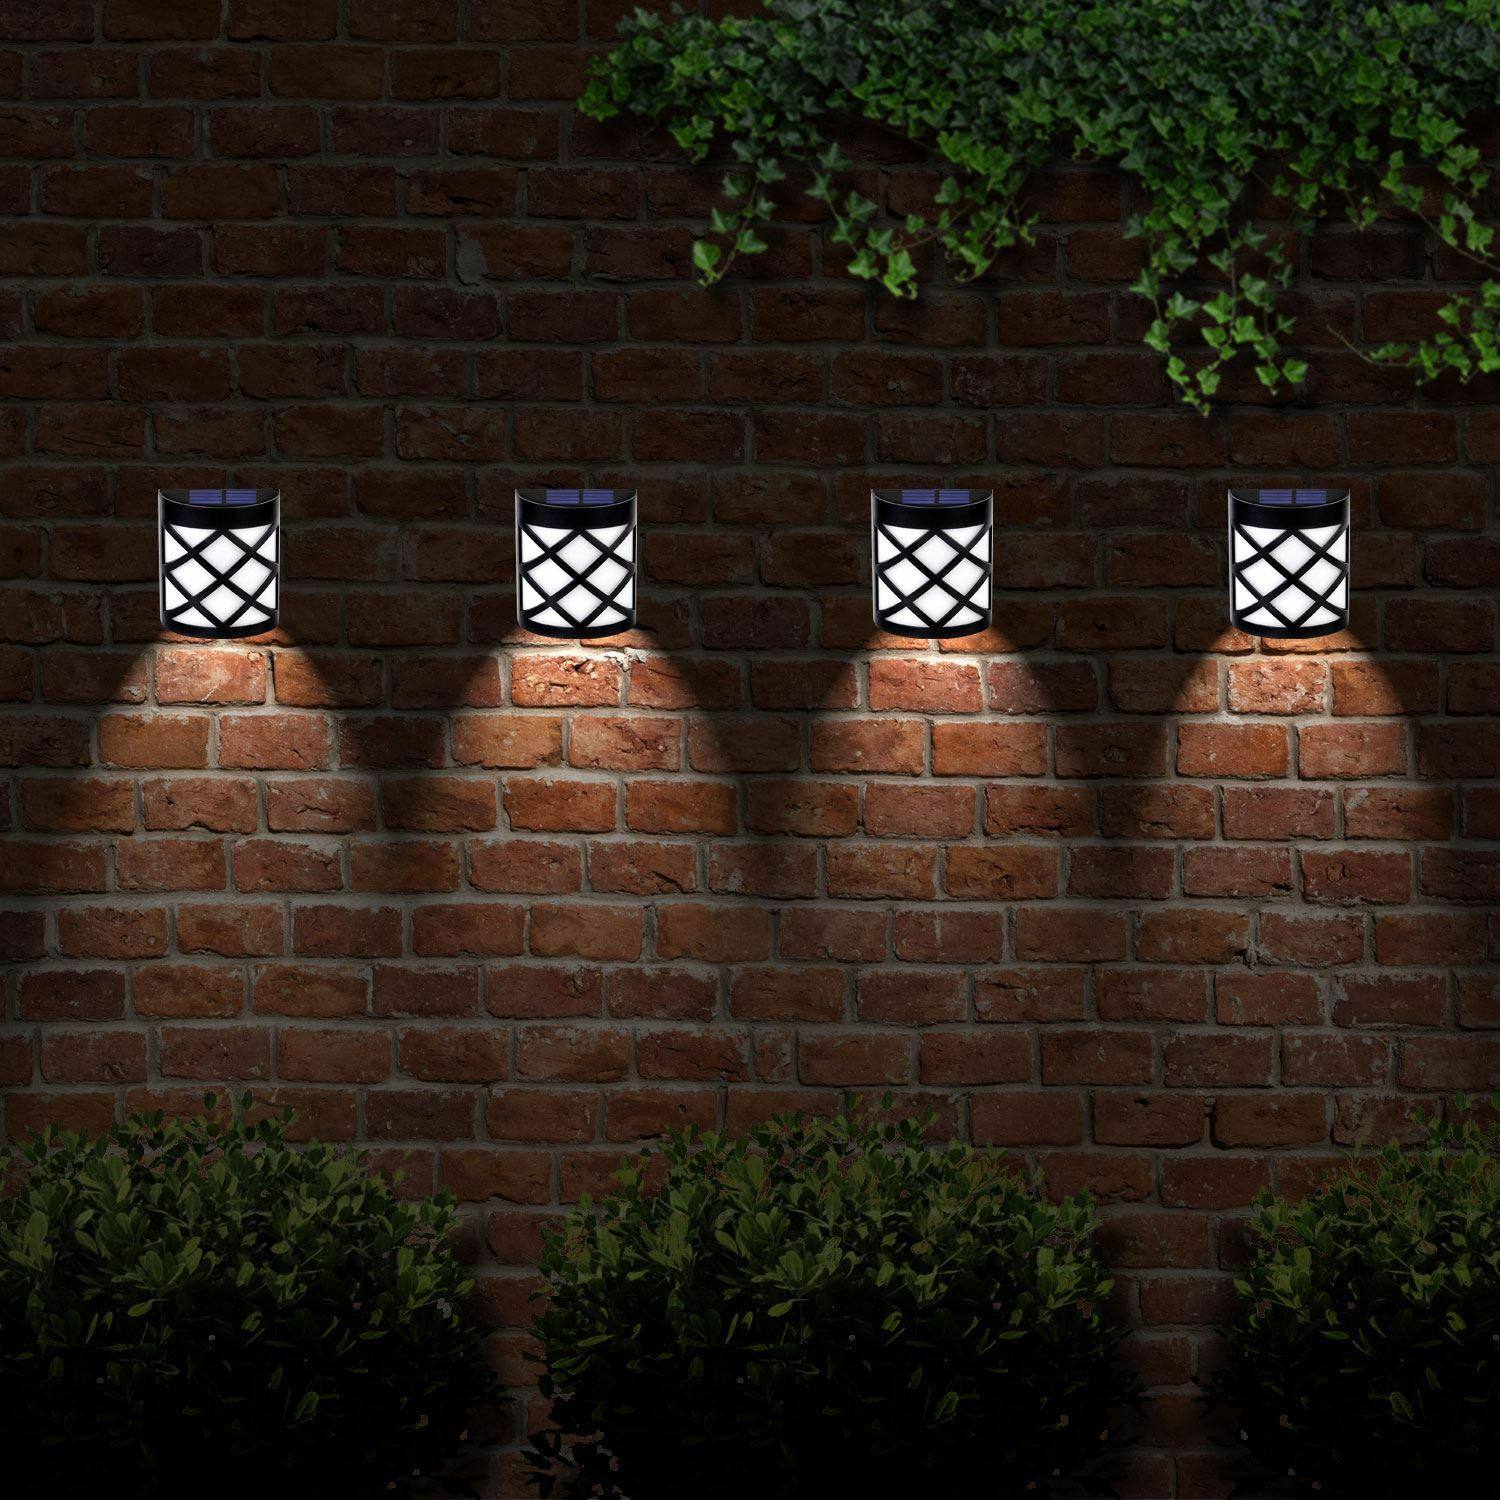 Solar Lights For Retaining Wall : 6xSolar Powered Outdoor Garden Shed Door Fence Wall Led Lights Bright Lighting EUR 21,57 ...